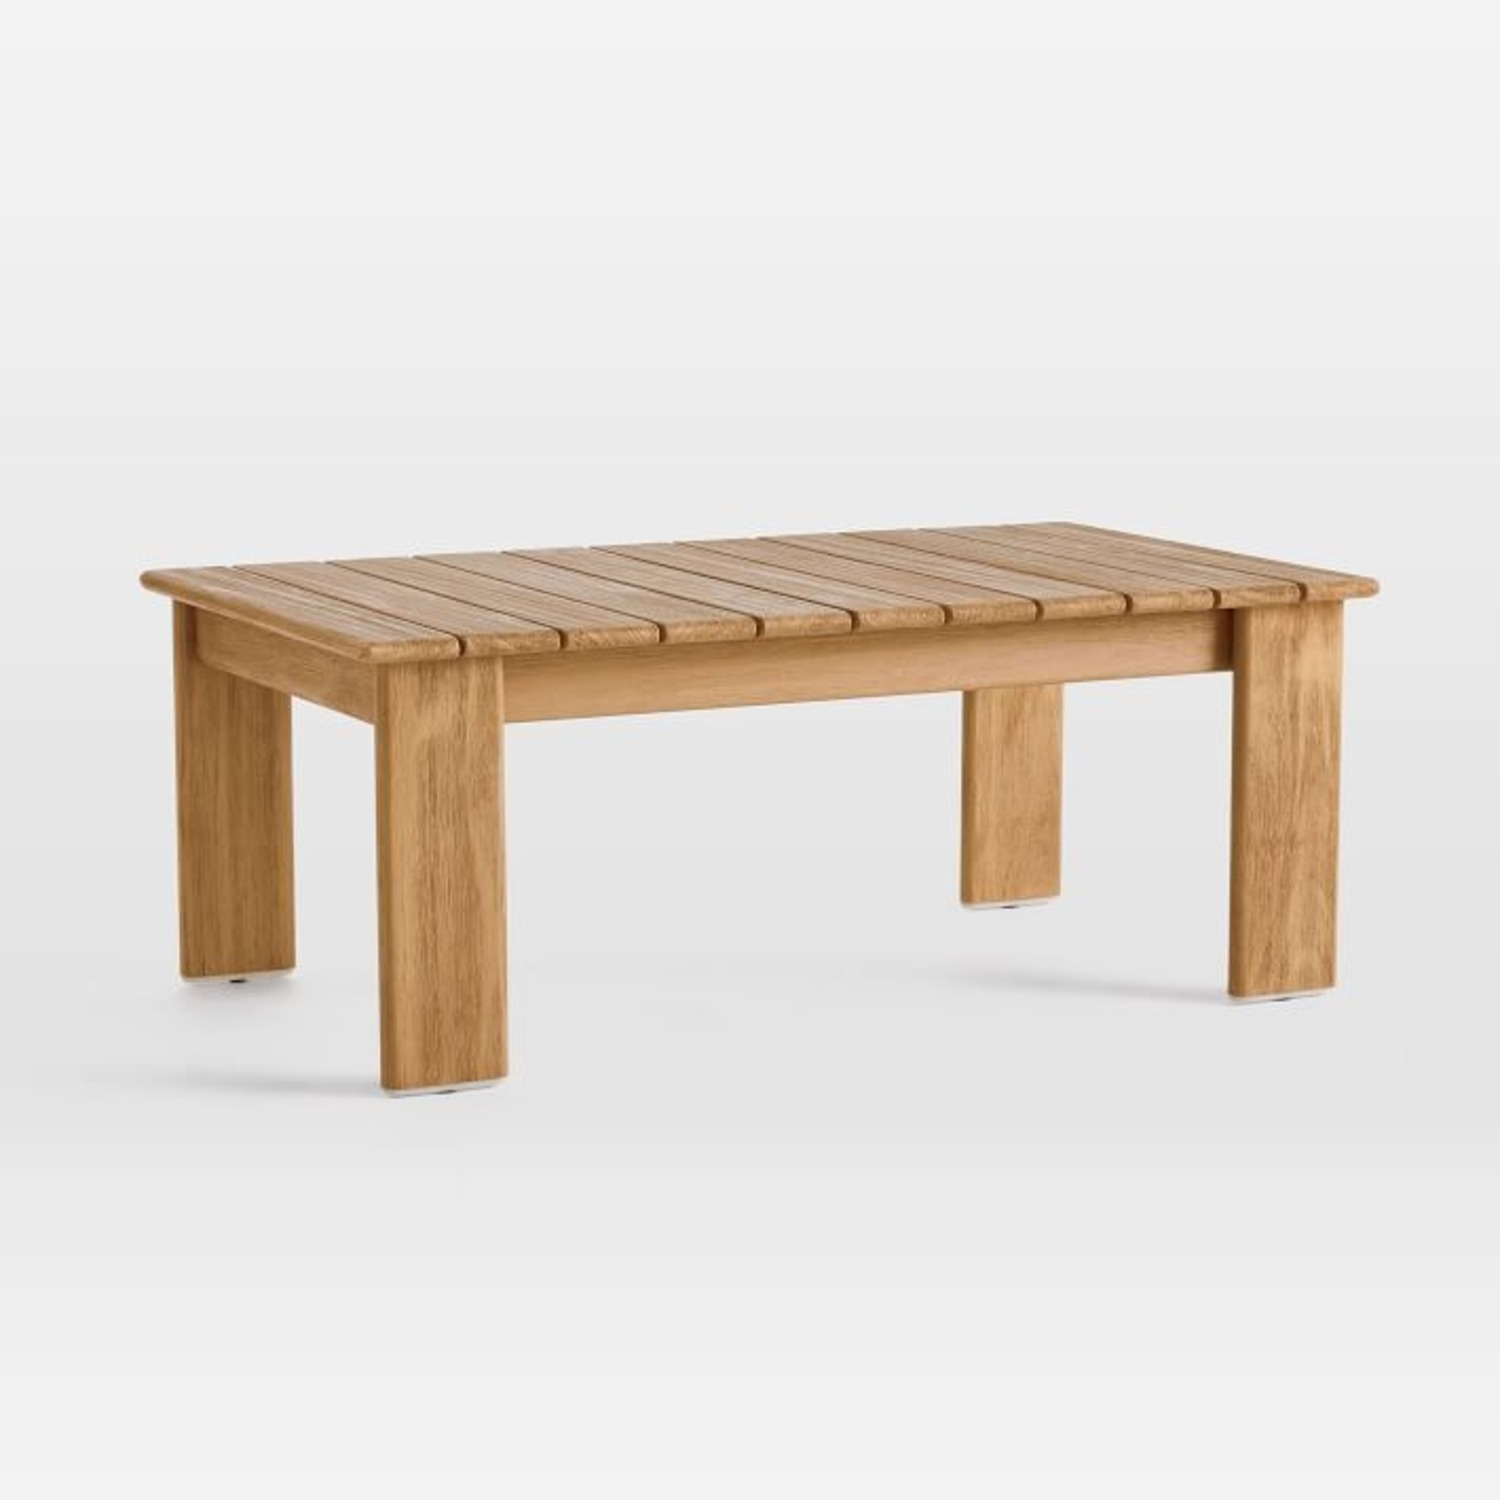 West Elm Playa Outdoor Coffee Table - image-1